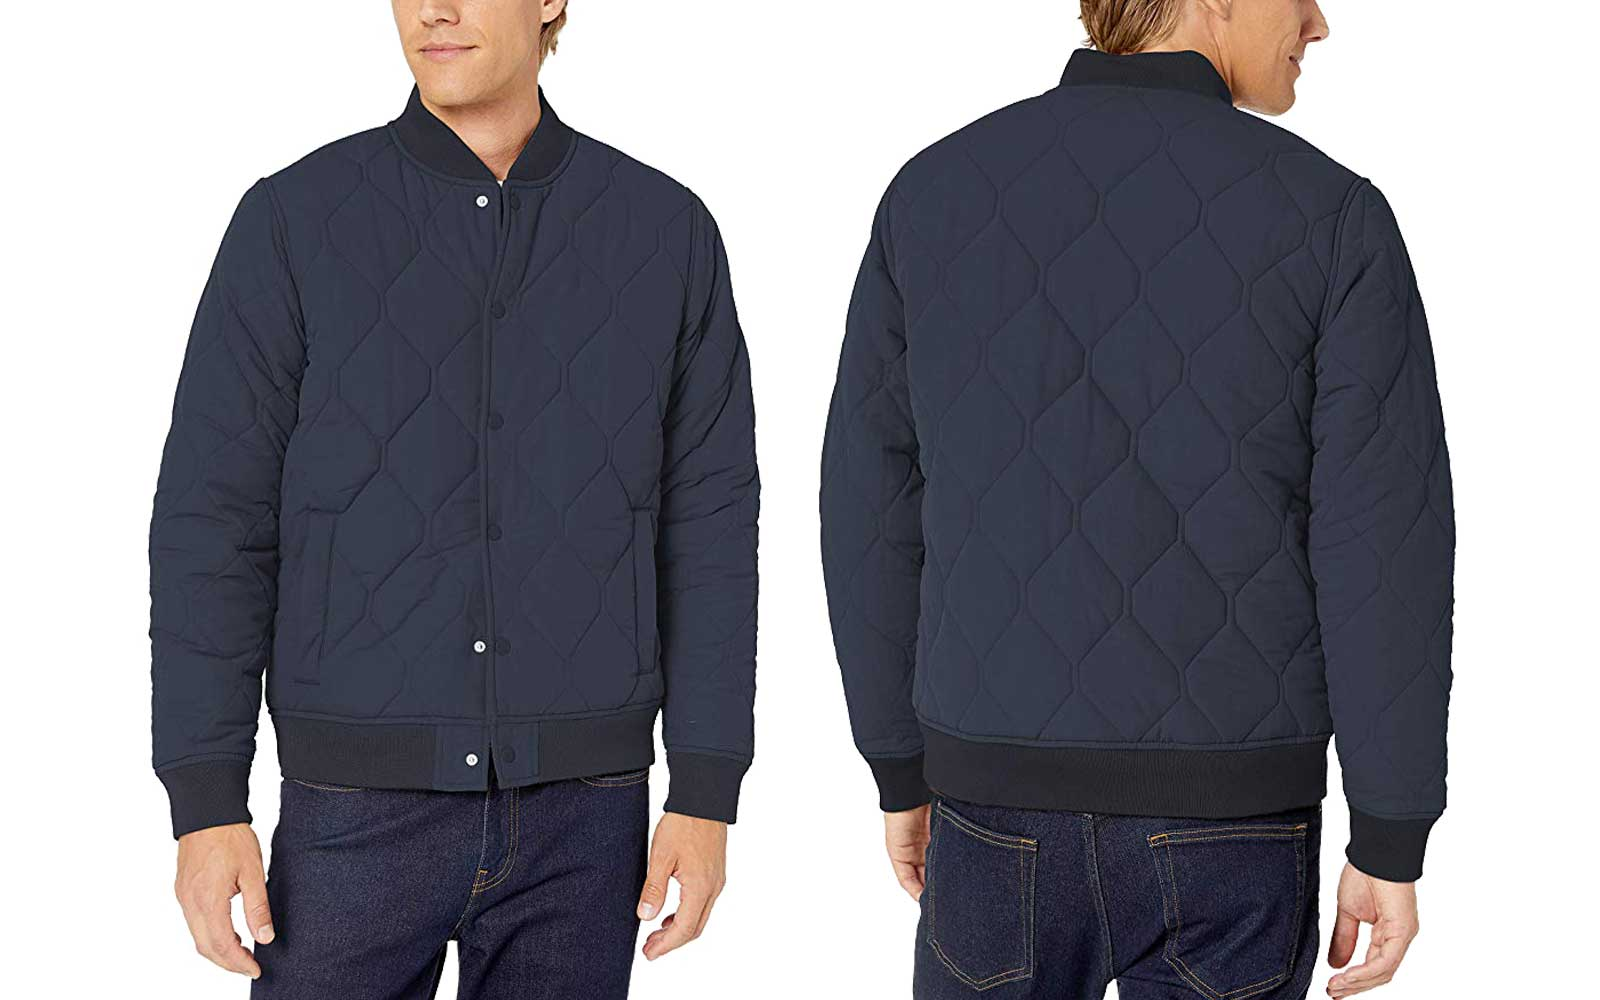 Navy Men's Bomber Jacket